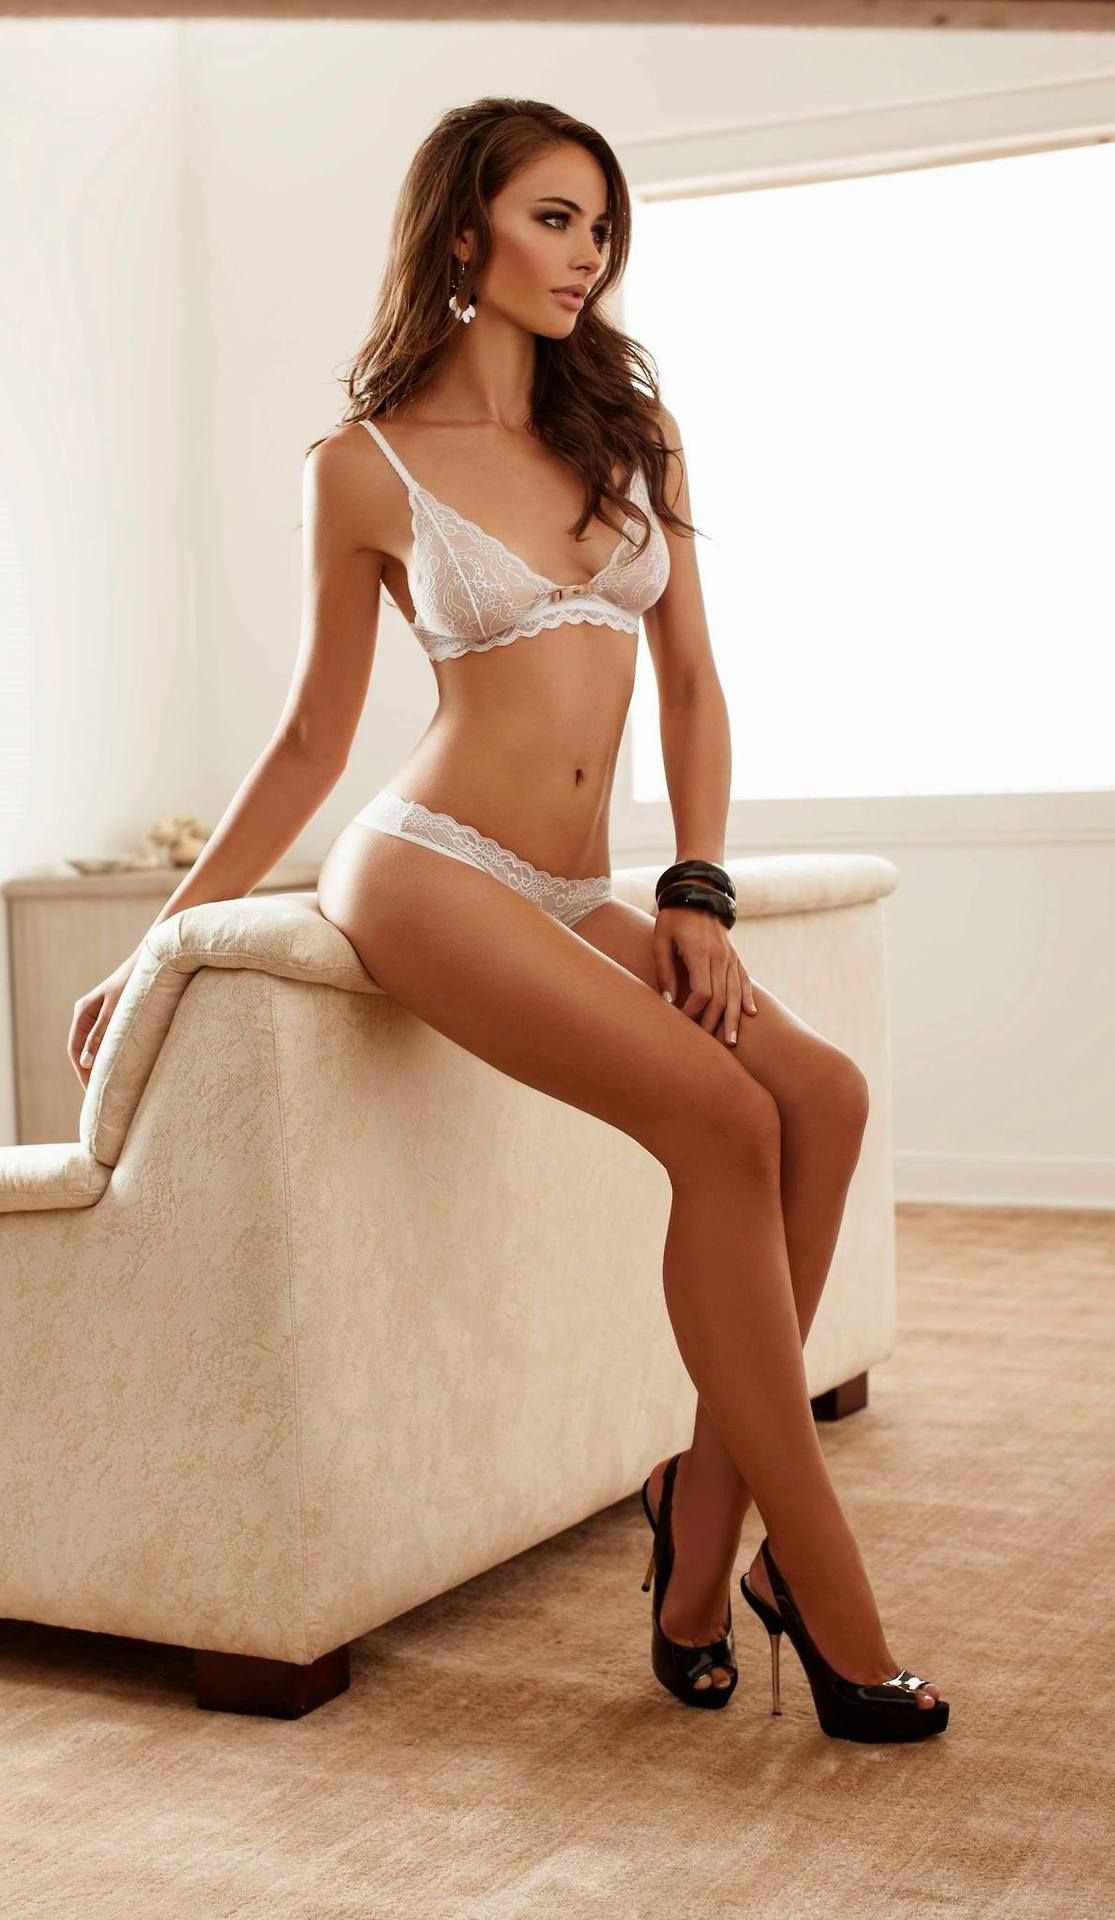 Luton escorts - charming brunette